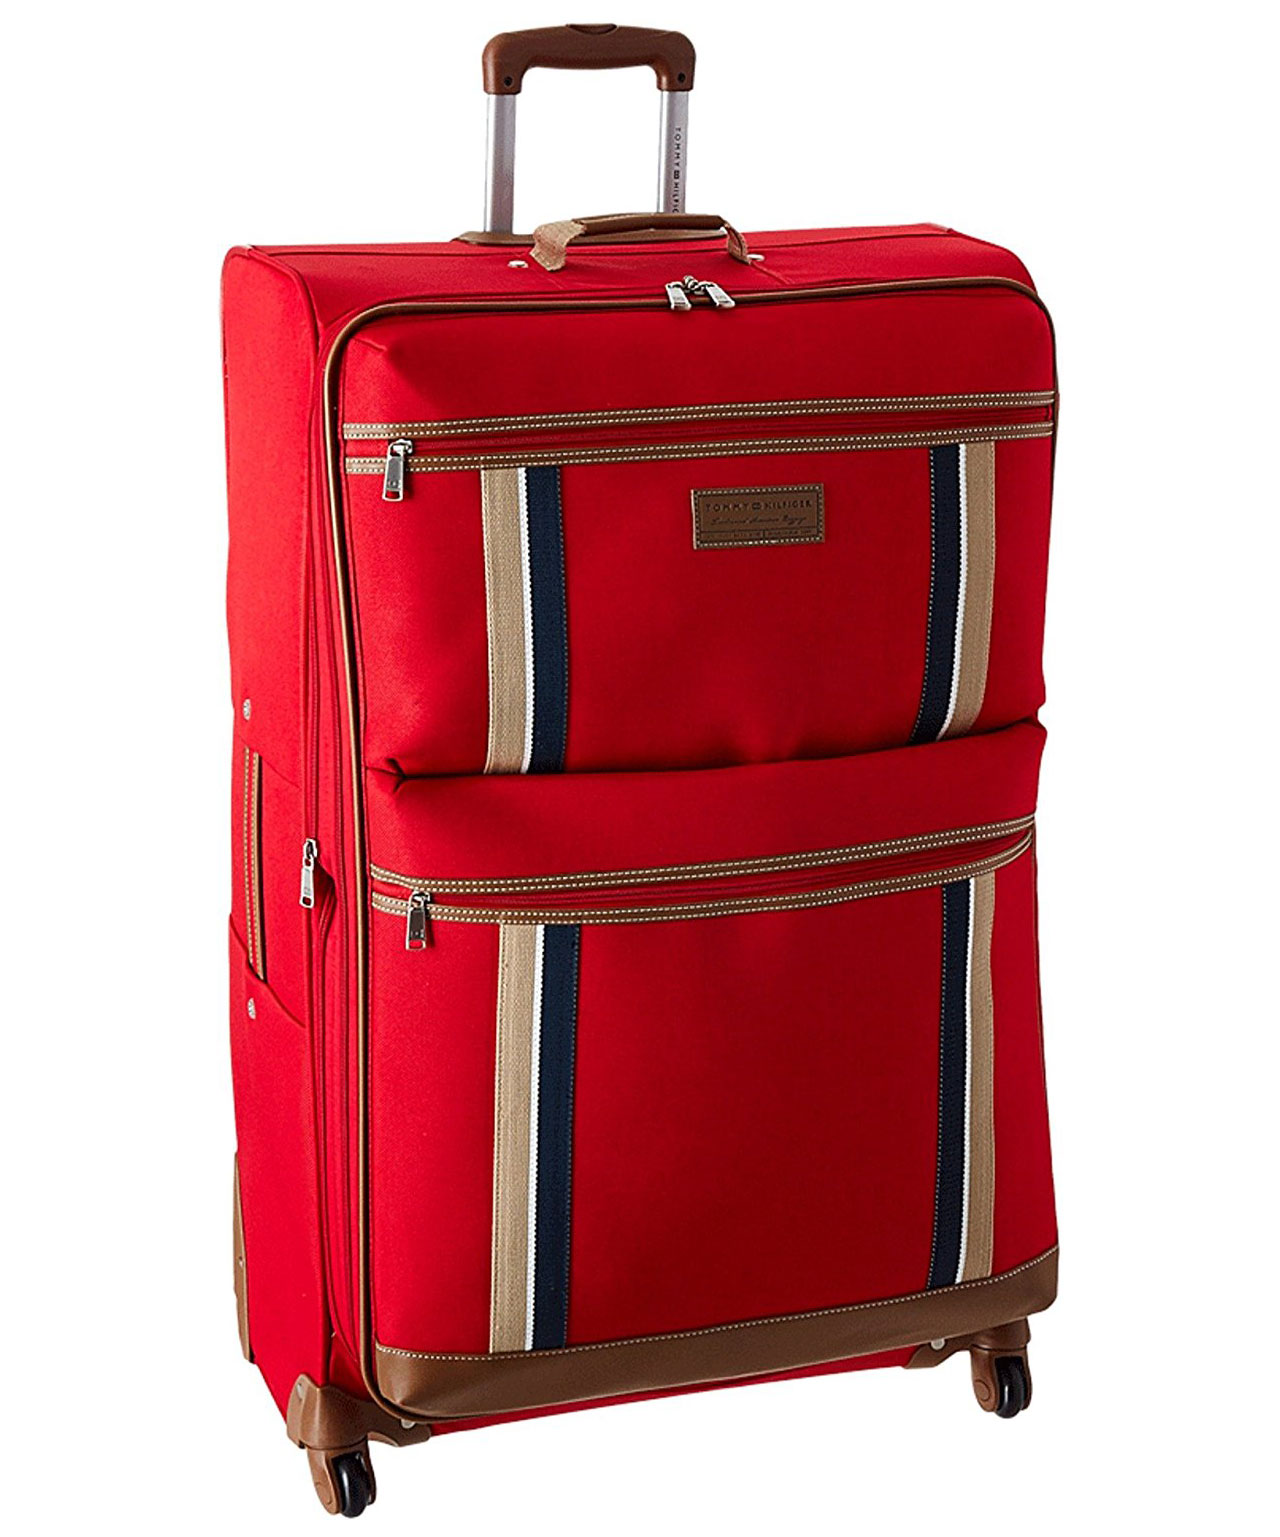 "Tommy Hilfiger Unisex Scout Upright 32"" Suitcase"